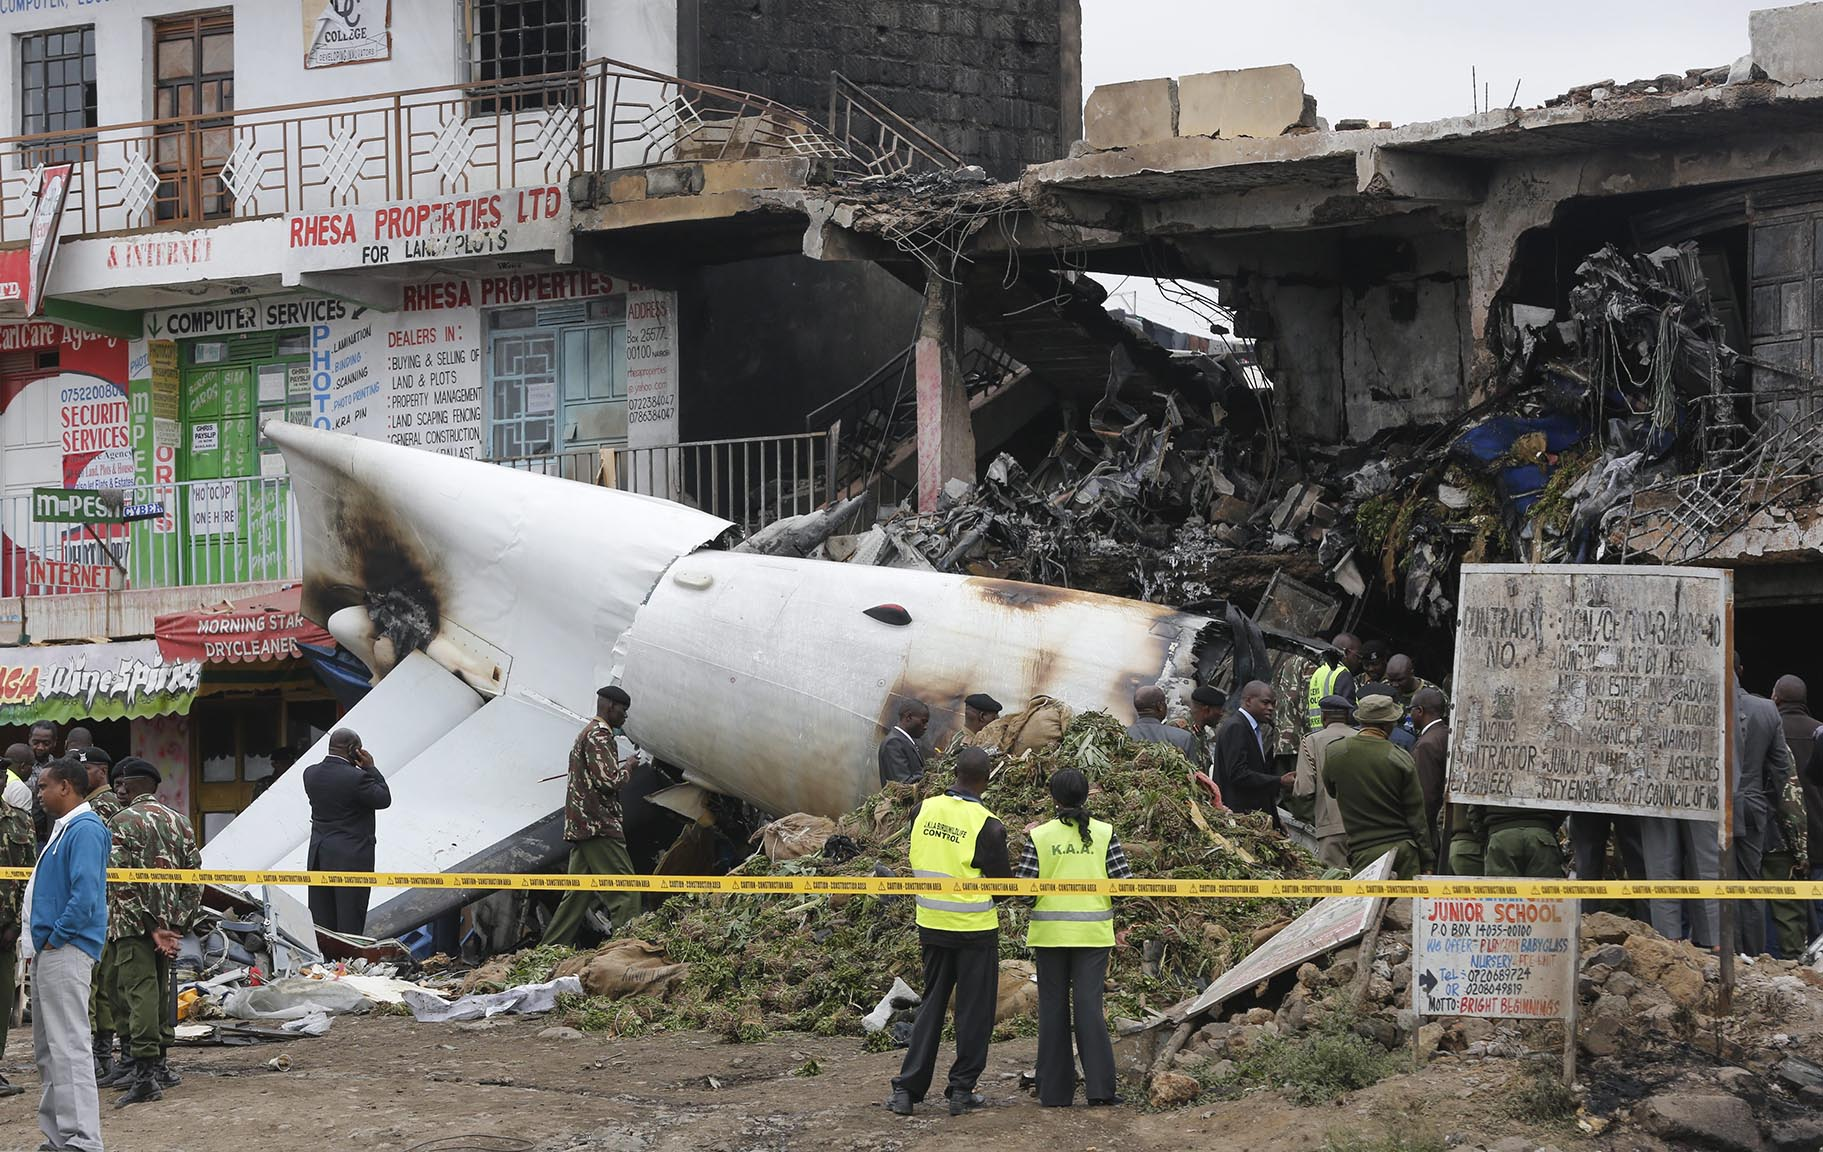 Cargo plane crashes in Kenya, all four occupants killed